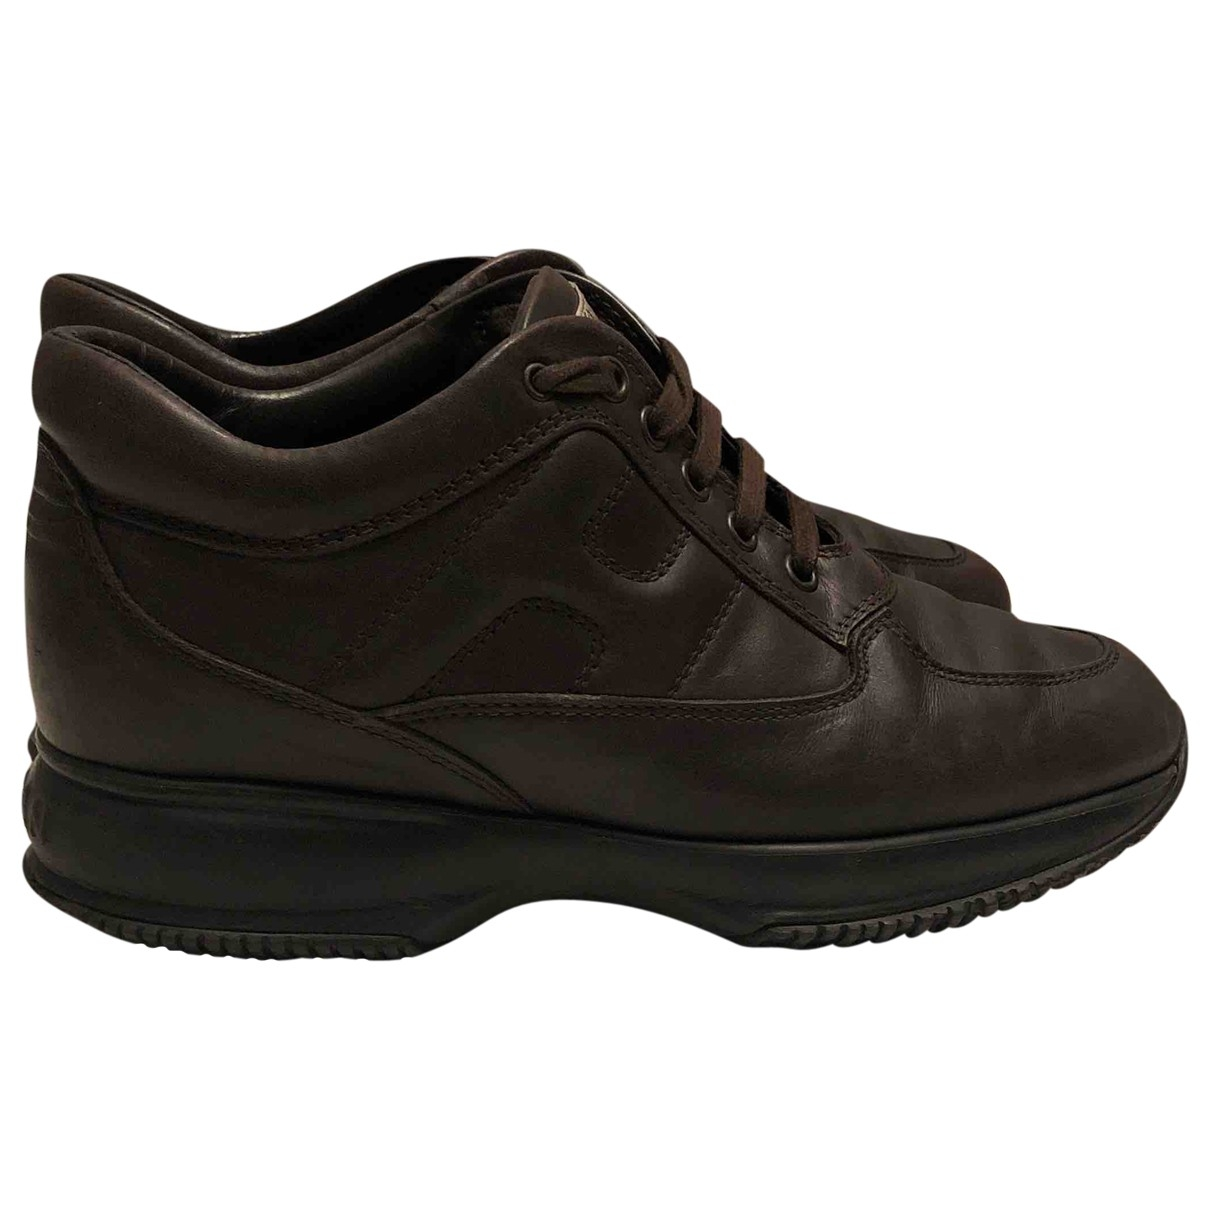 Hogan \N Brown Leather Trainers for Women 38 EU